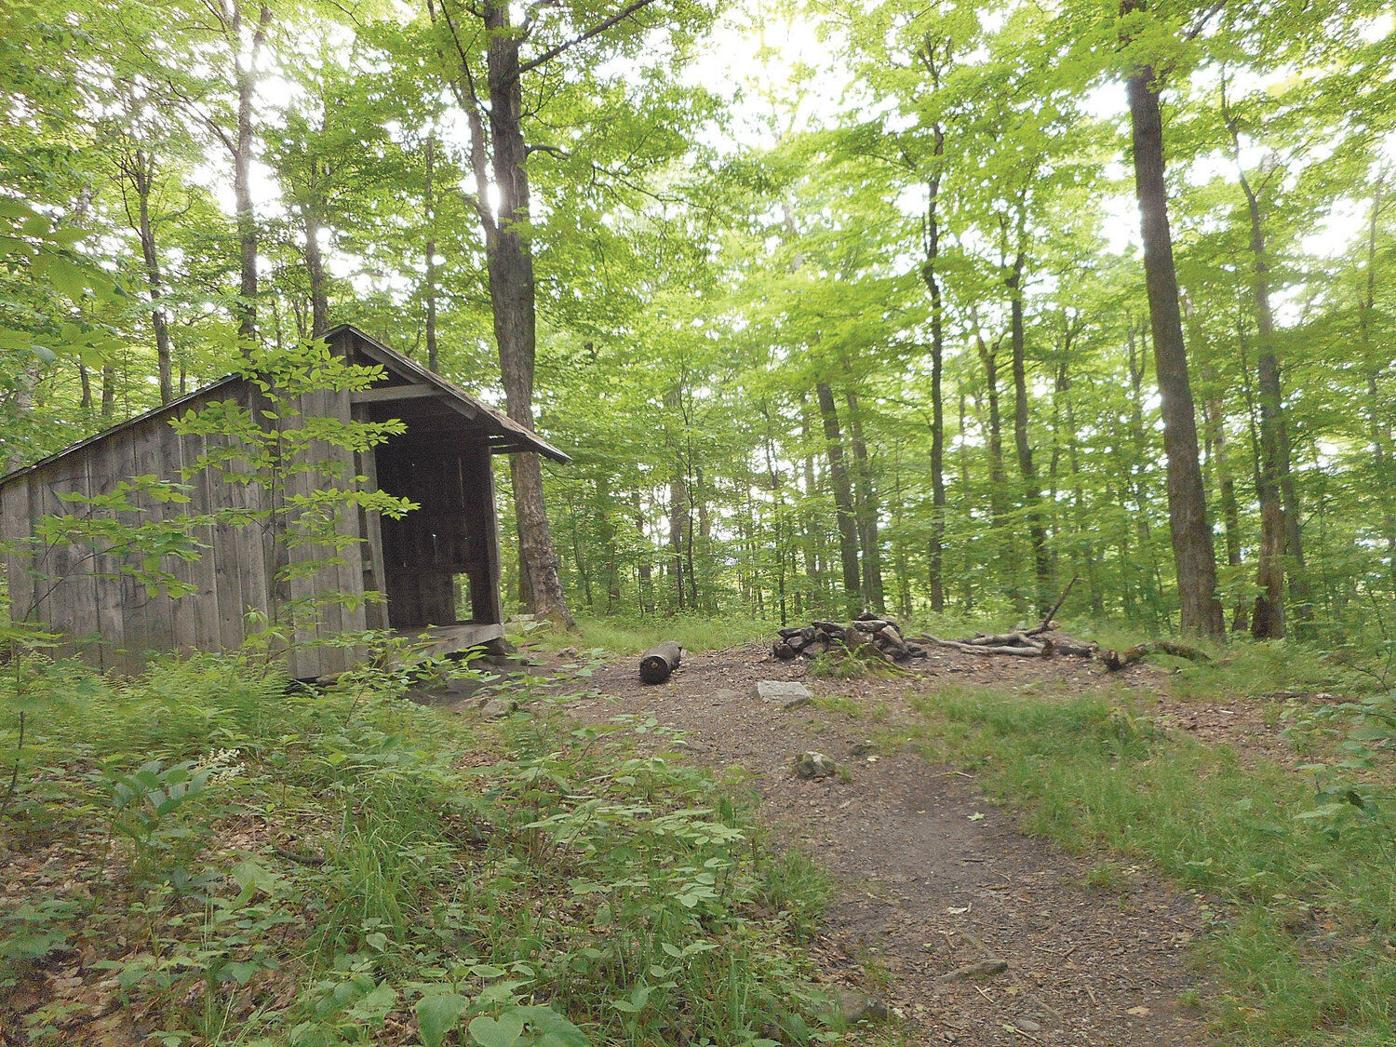 Lauren R. Stevens | Hikes and Walks: How to follow Thoreau up Mount Greylock